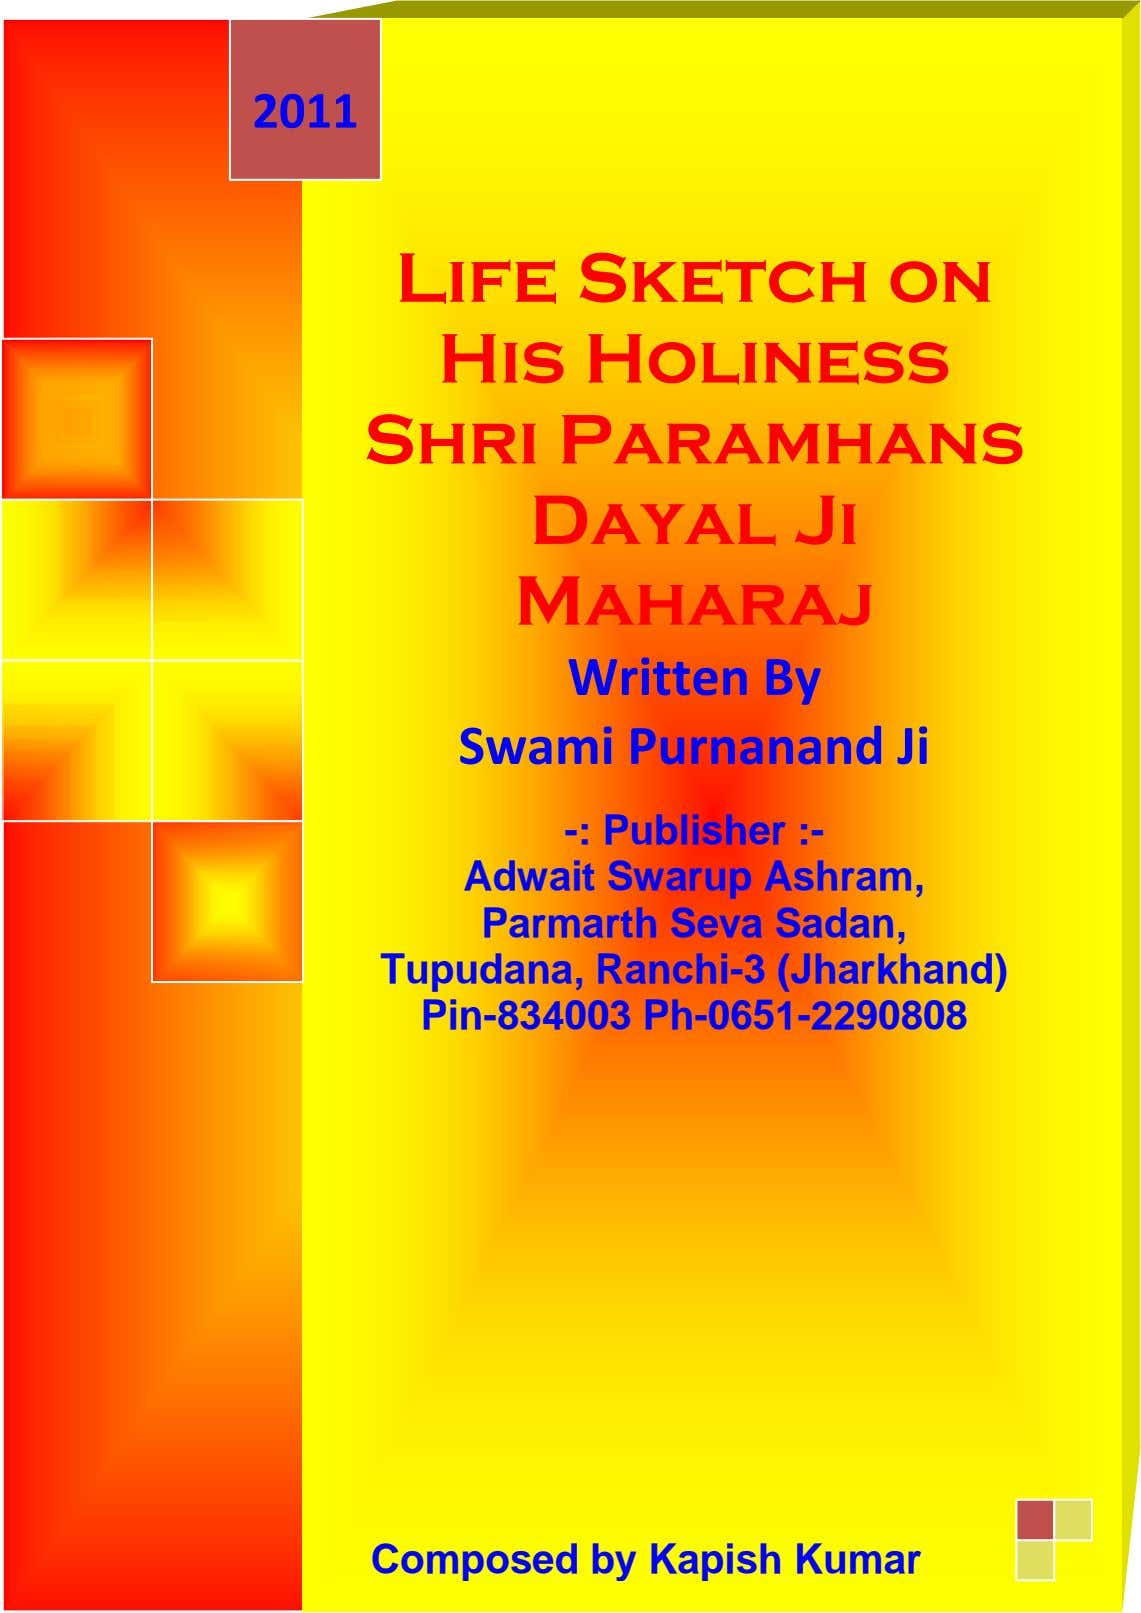 2011 Life Sketch on His Holiness Shri Paramhans Dayal Ji Maharaj Written By Swami Purnanand